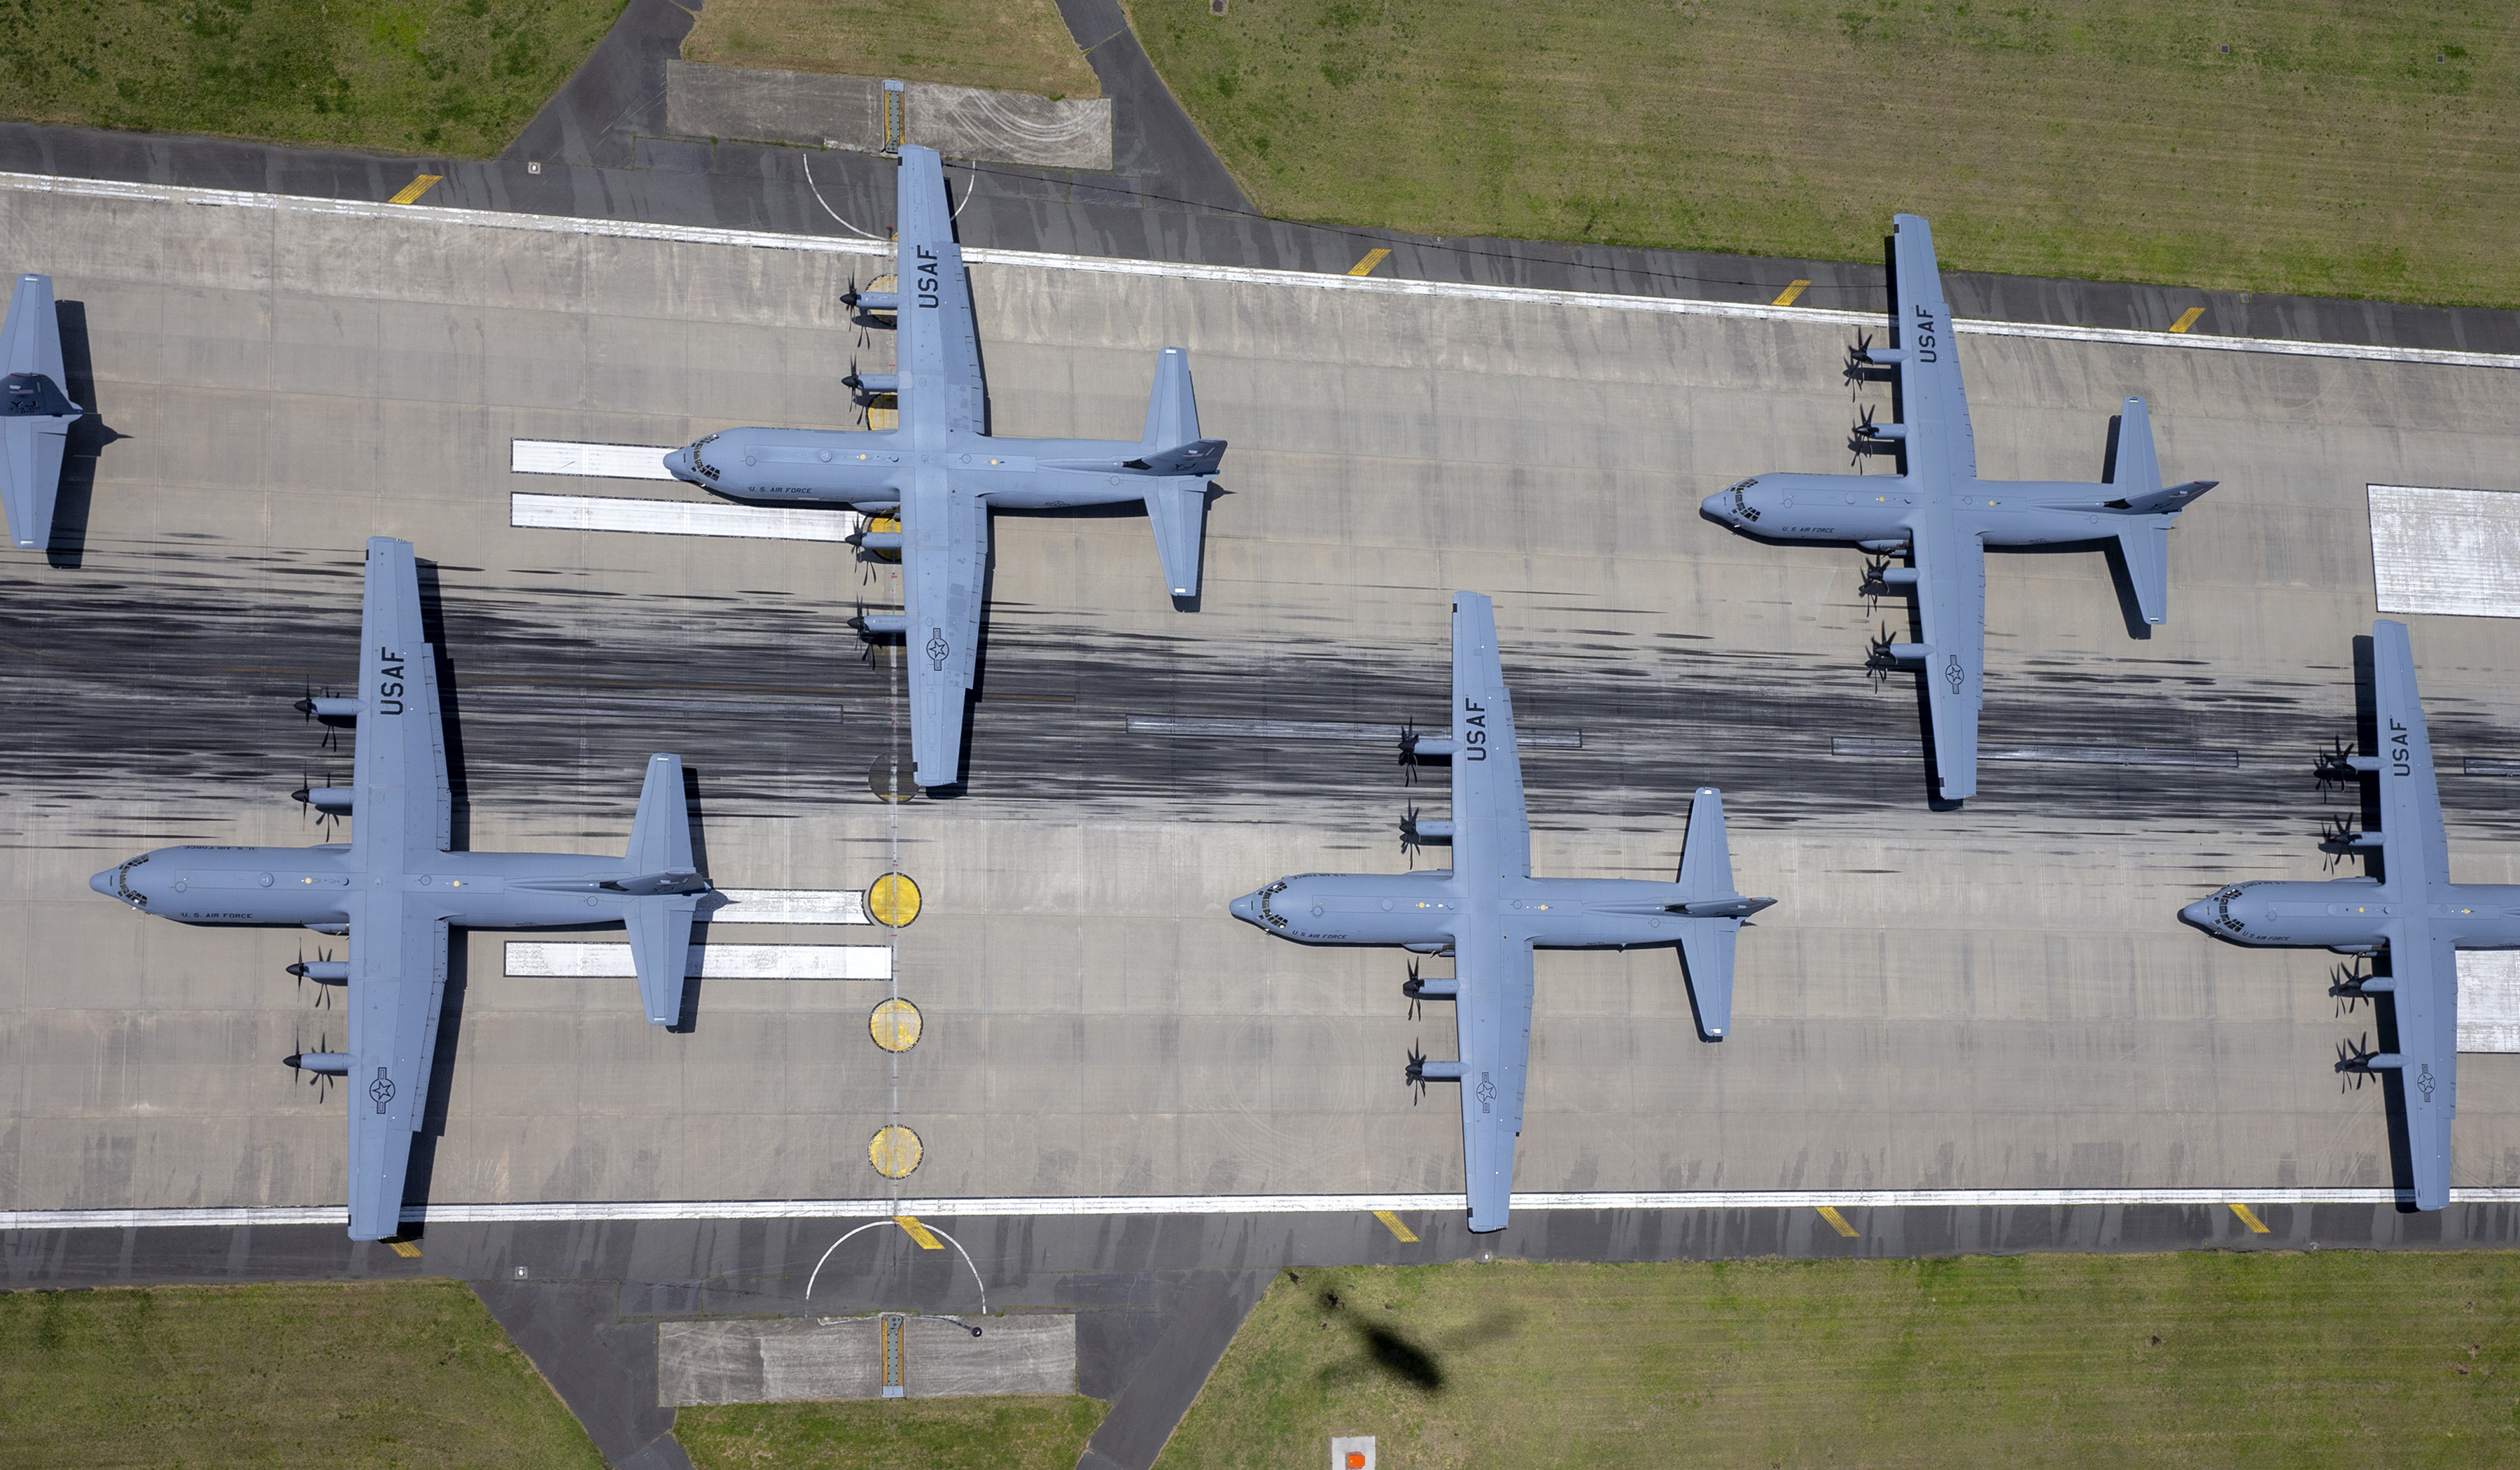 USAF cargo planes in formation on a runway.